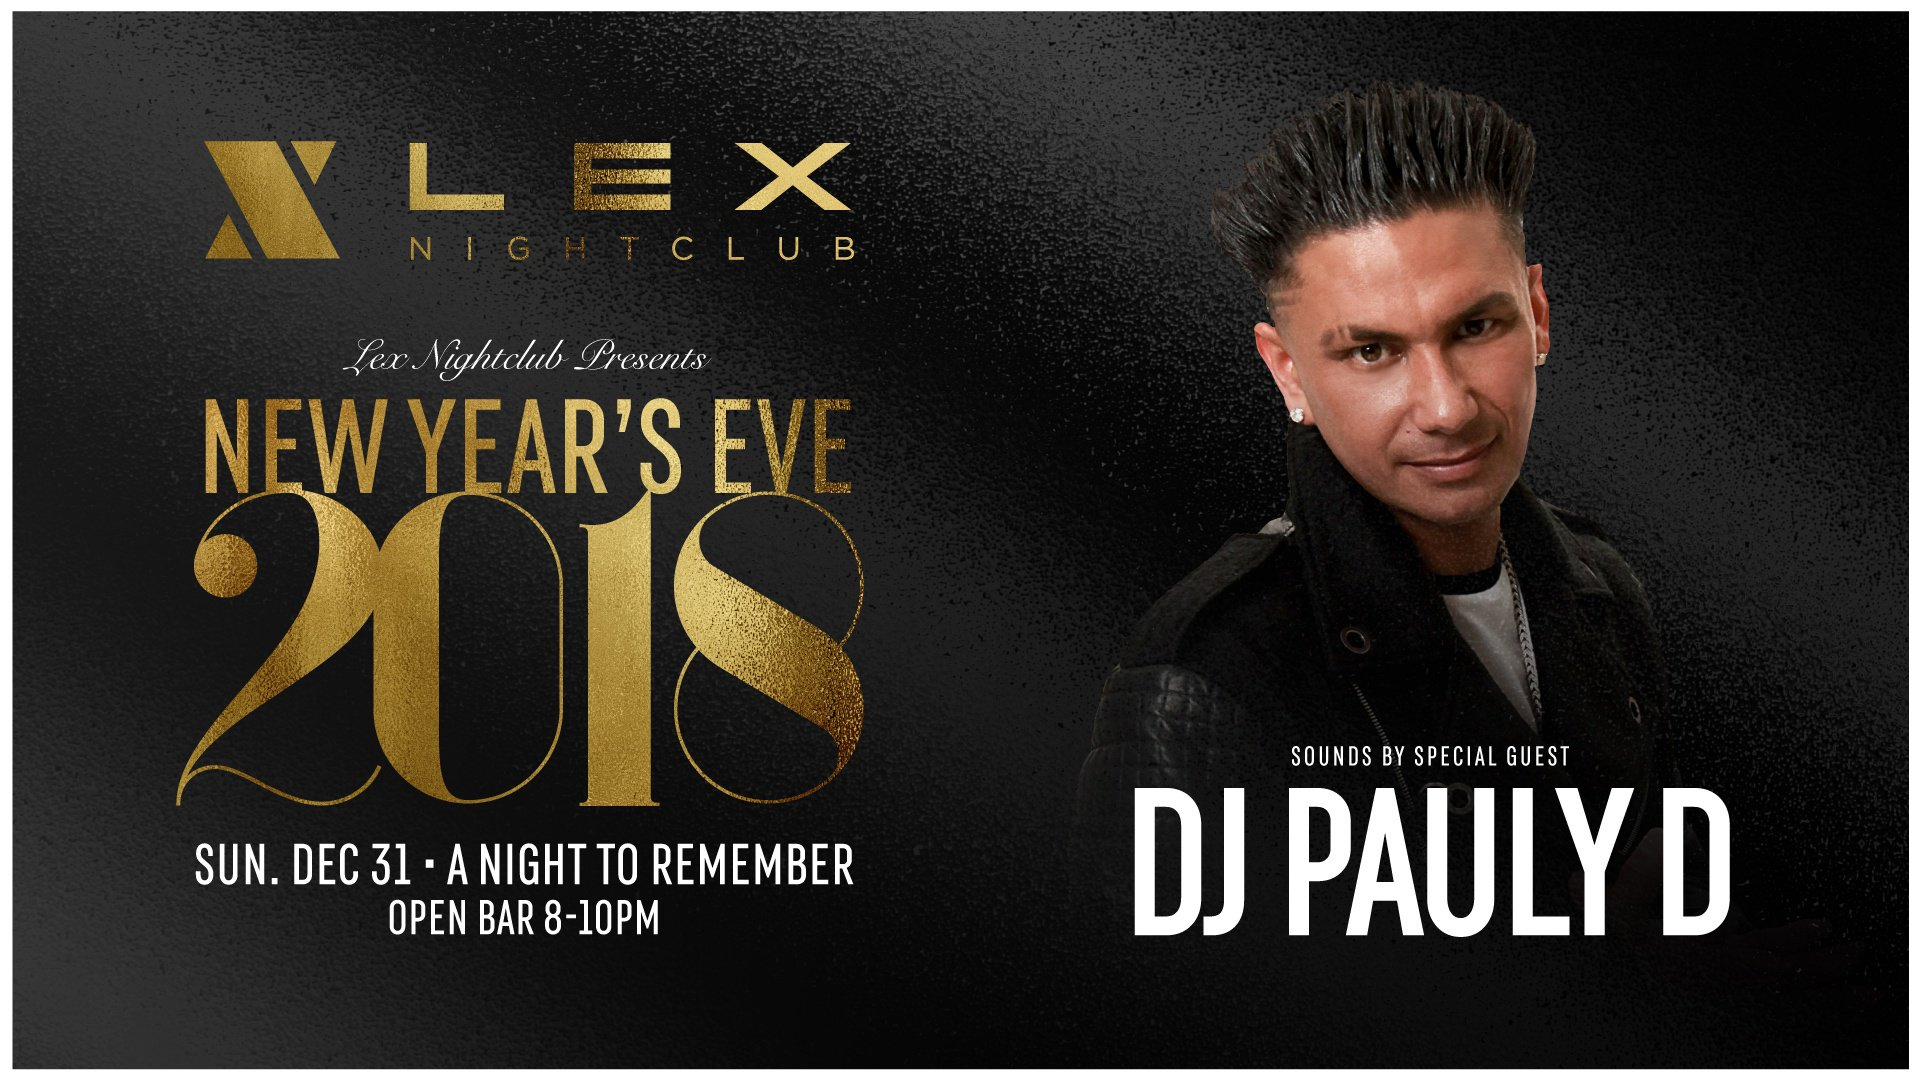 RT @grandsierra: #LEXNightclub is closing out 2017 with @DJPaulyD! @LexNightclub https://t.co/sjxYPhOYJf https://t.co/PzvENVSuL5